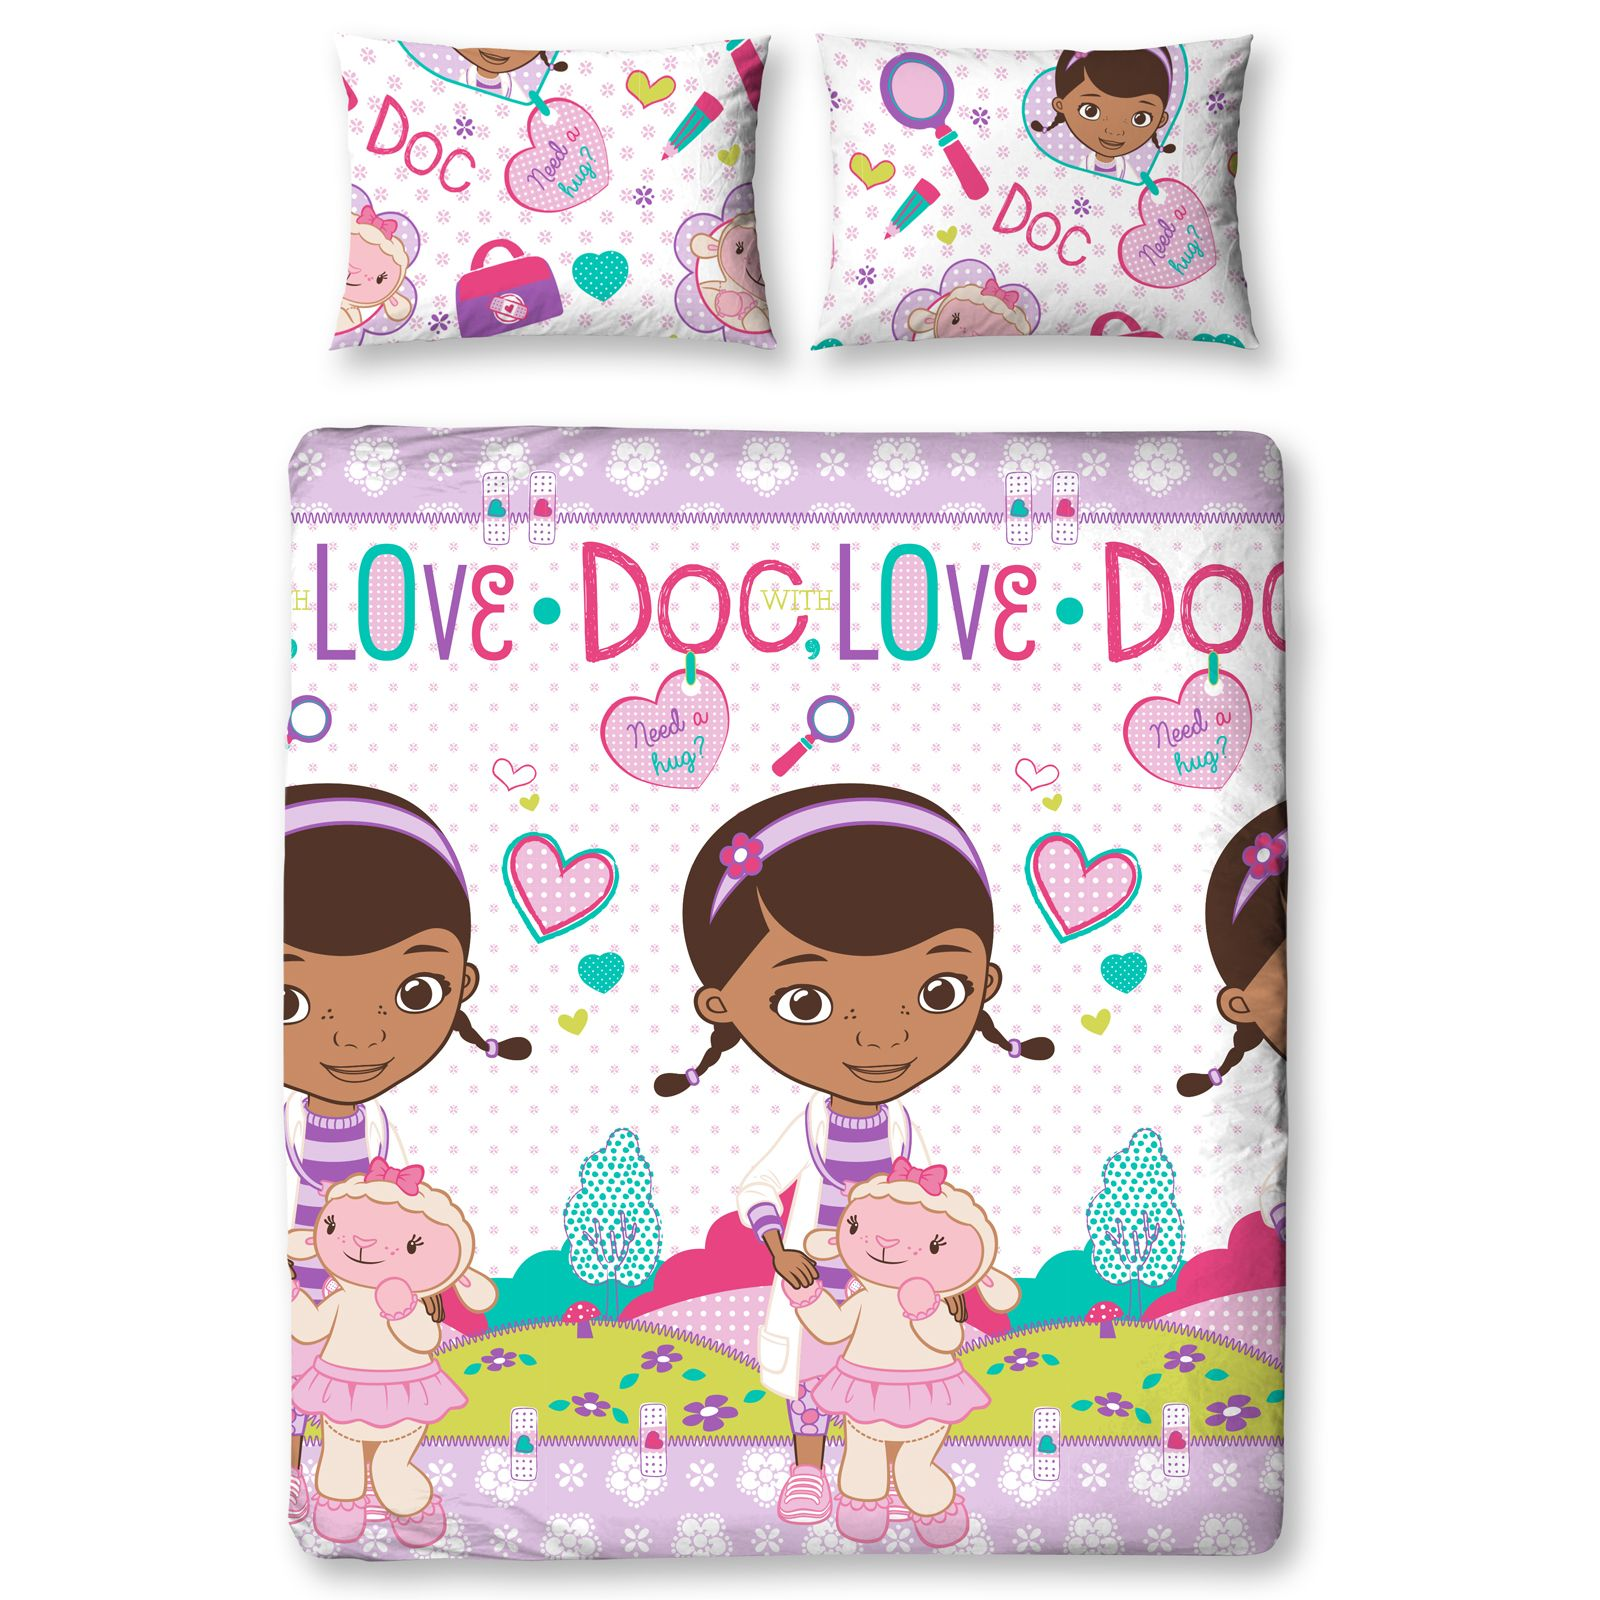 doc mcstuffins upholstered chair uk keter high review bedding single and double duvet cover sets